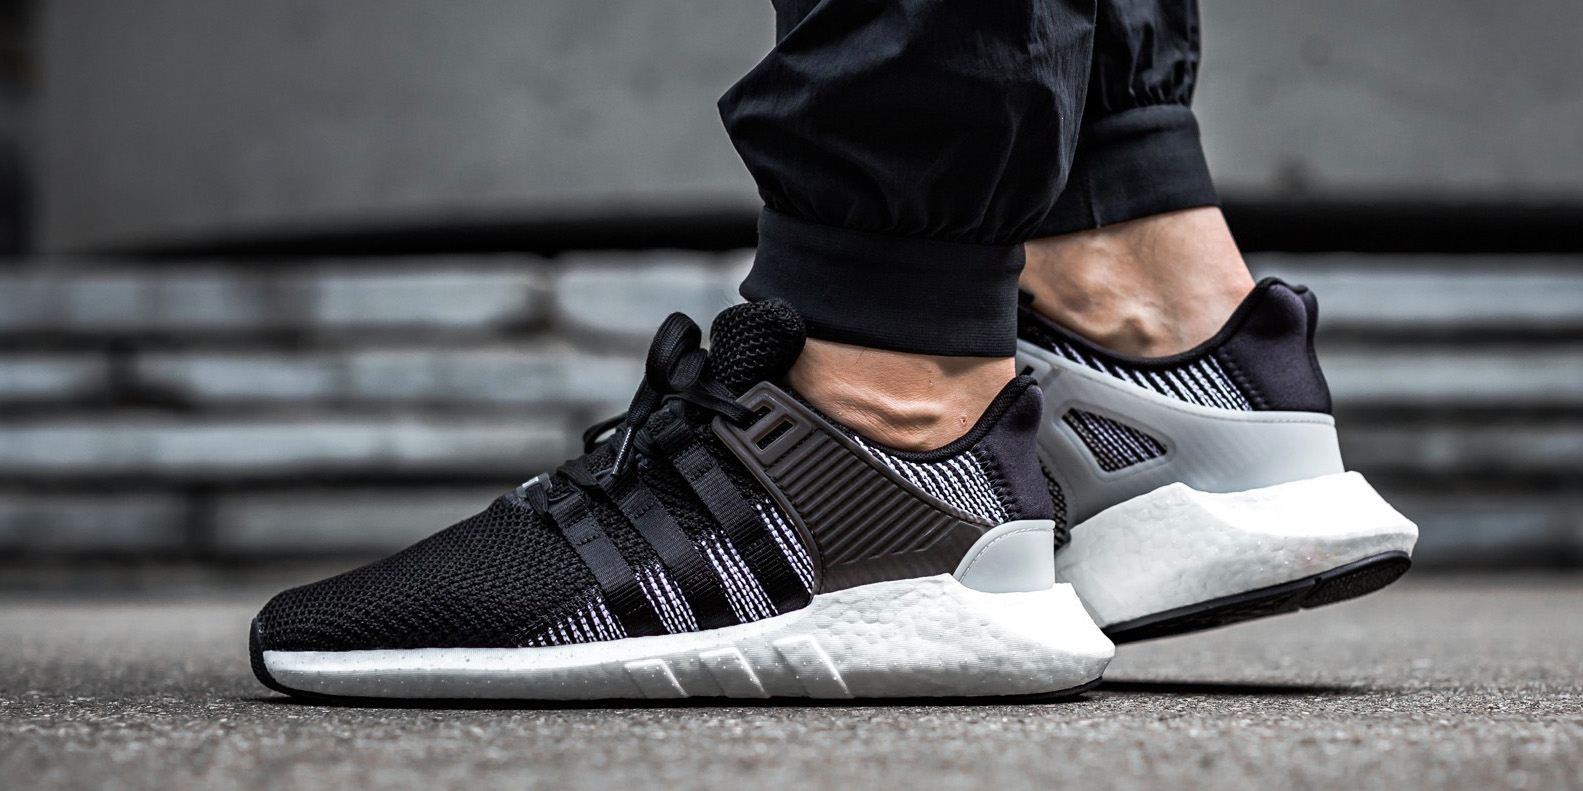 an off EQT and select apparel shoes from 33 40 extra cuts adidas wHxqn5gB7I